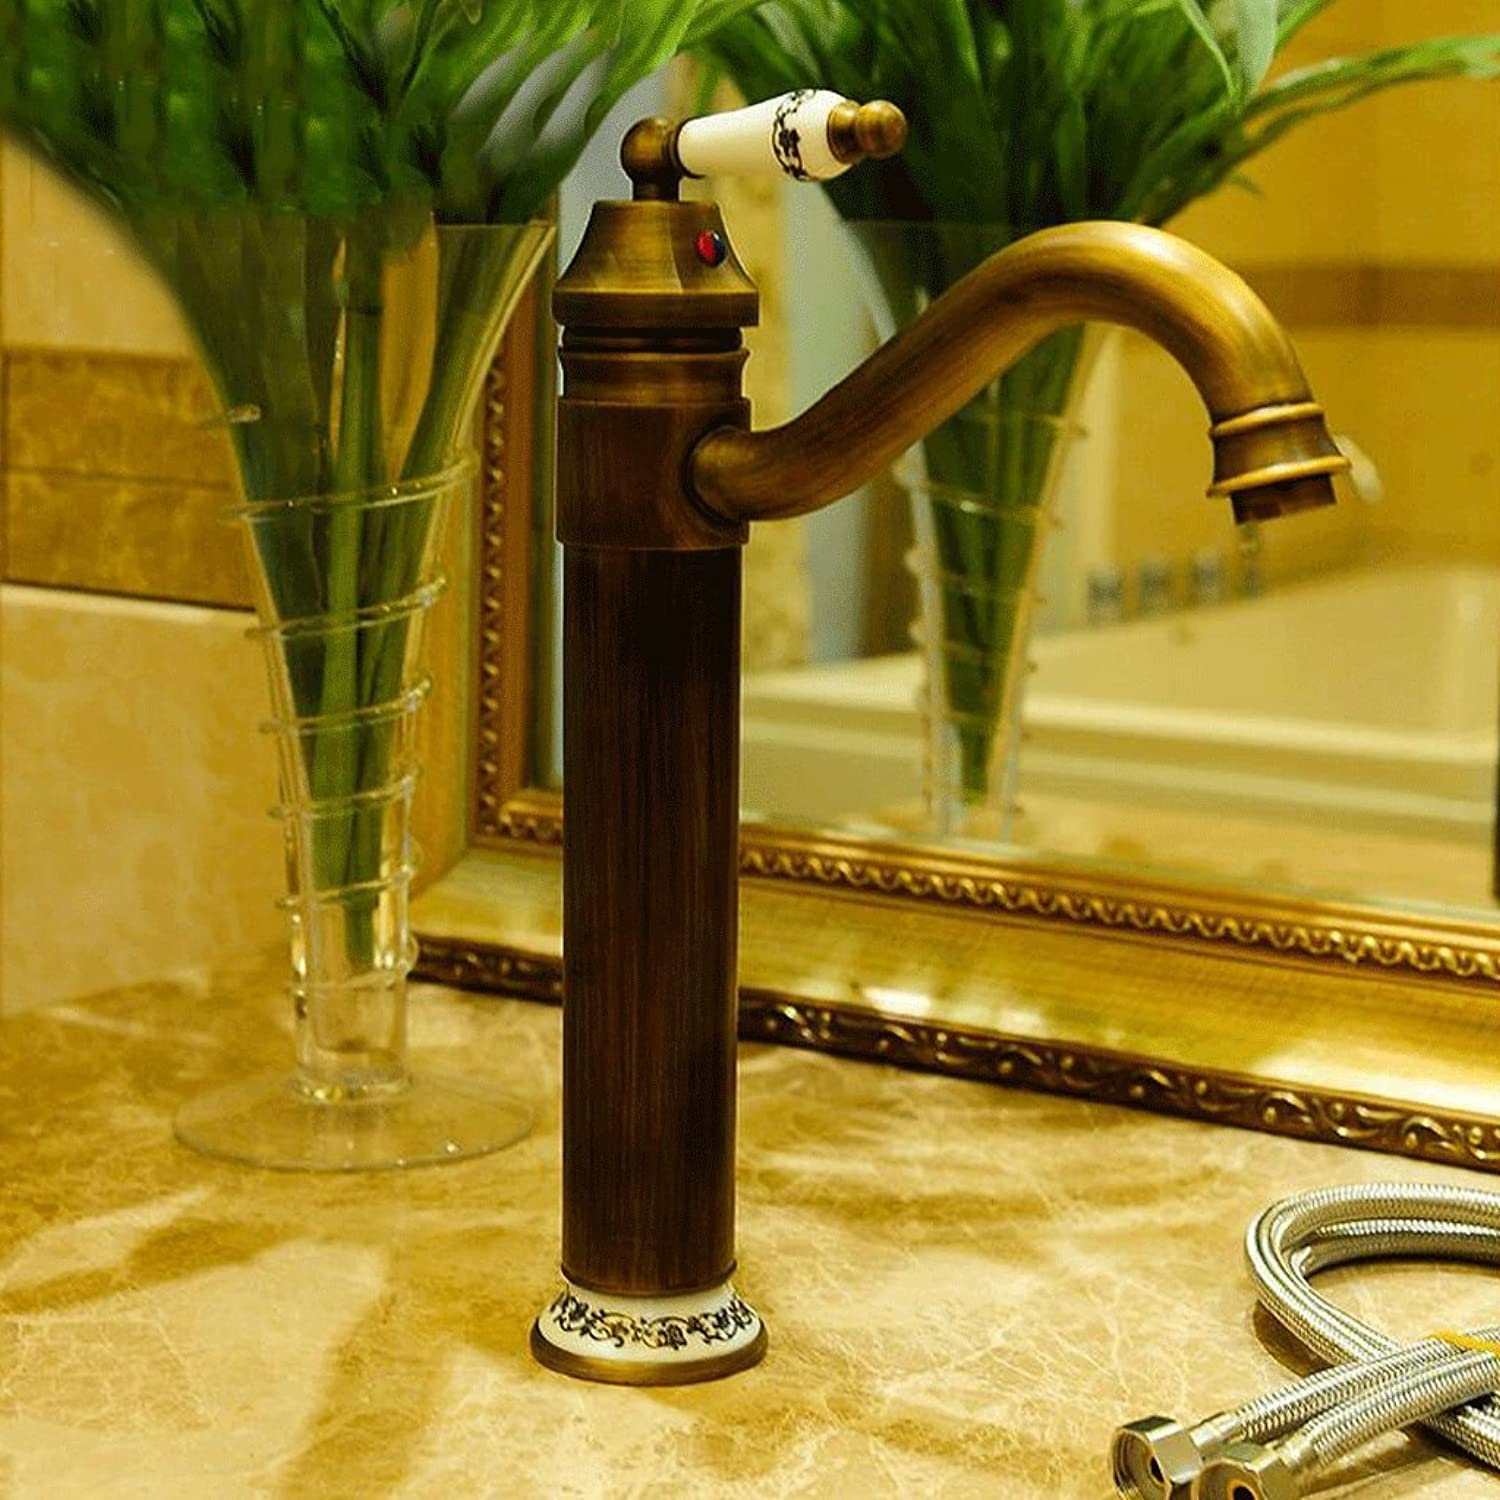 Rollsnownow Retro dark yellow hot and cold faucet